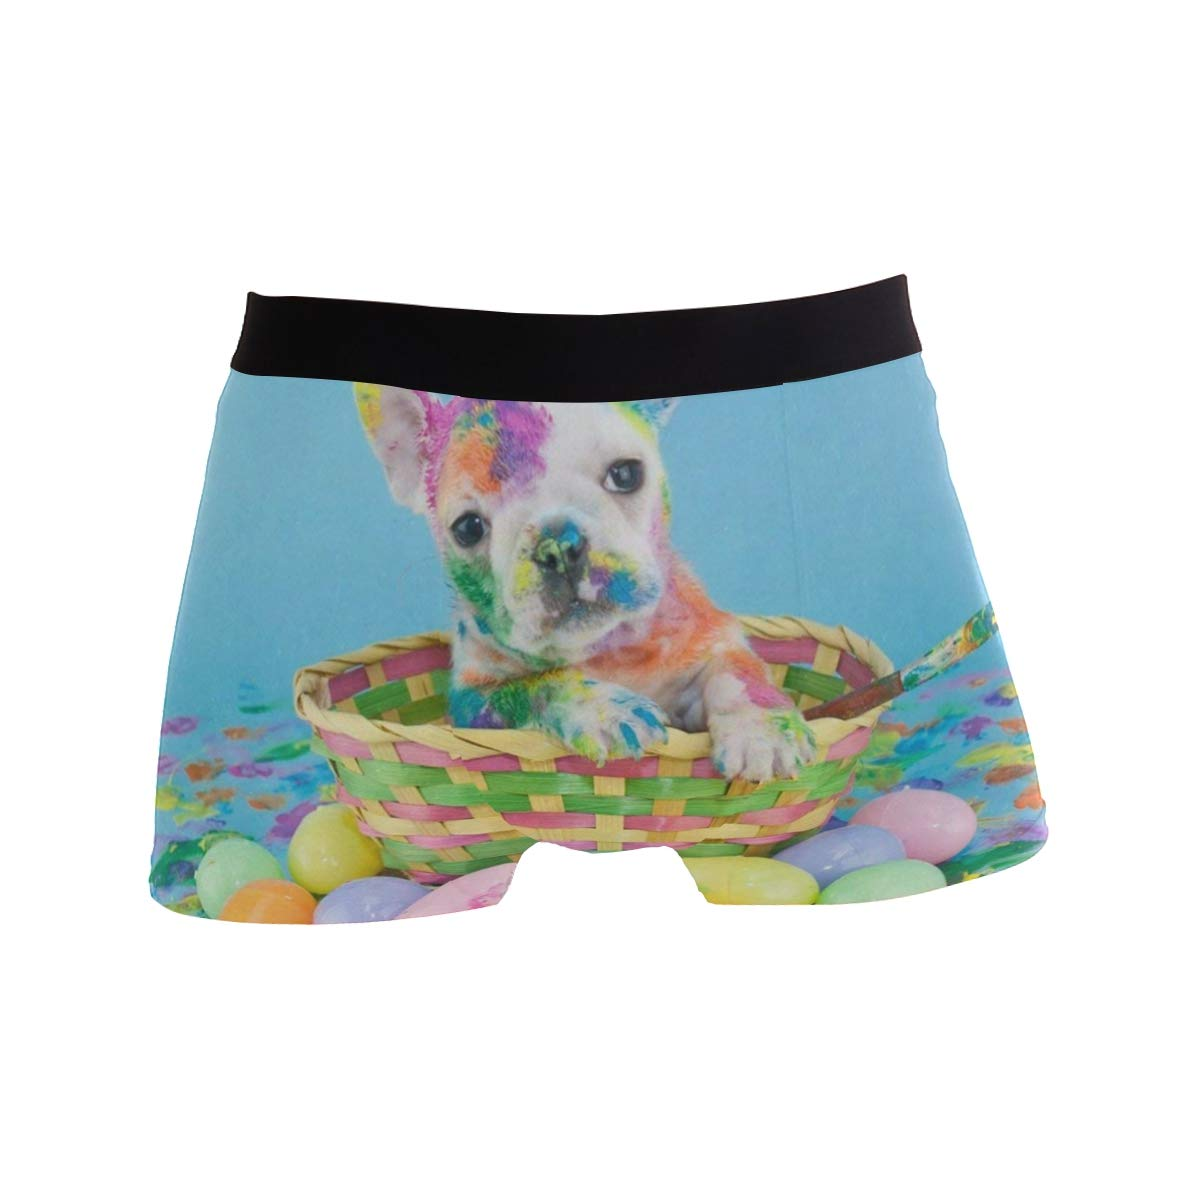 CATSDER French Bulldog Easter Egg Boxer Briefs Mens Underwear Pack Seamless Comfort Soft